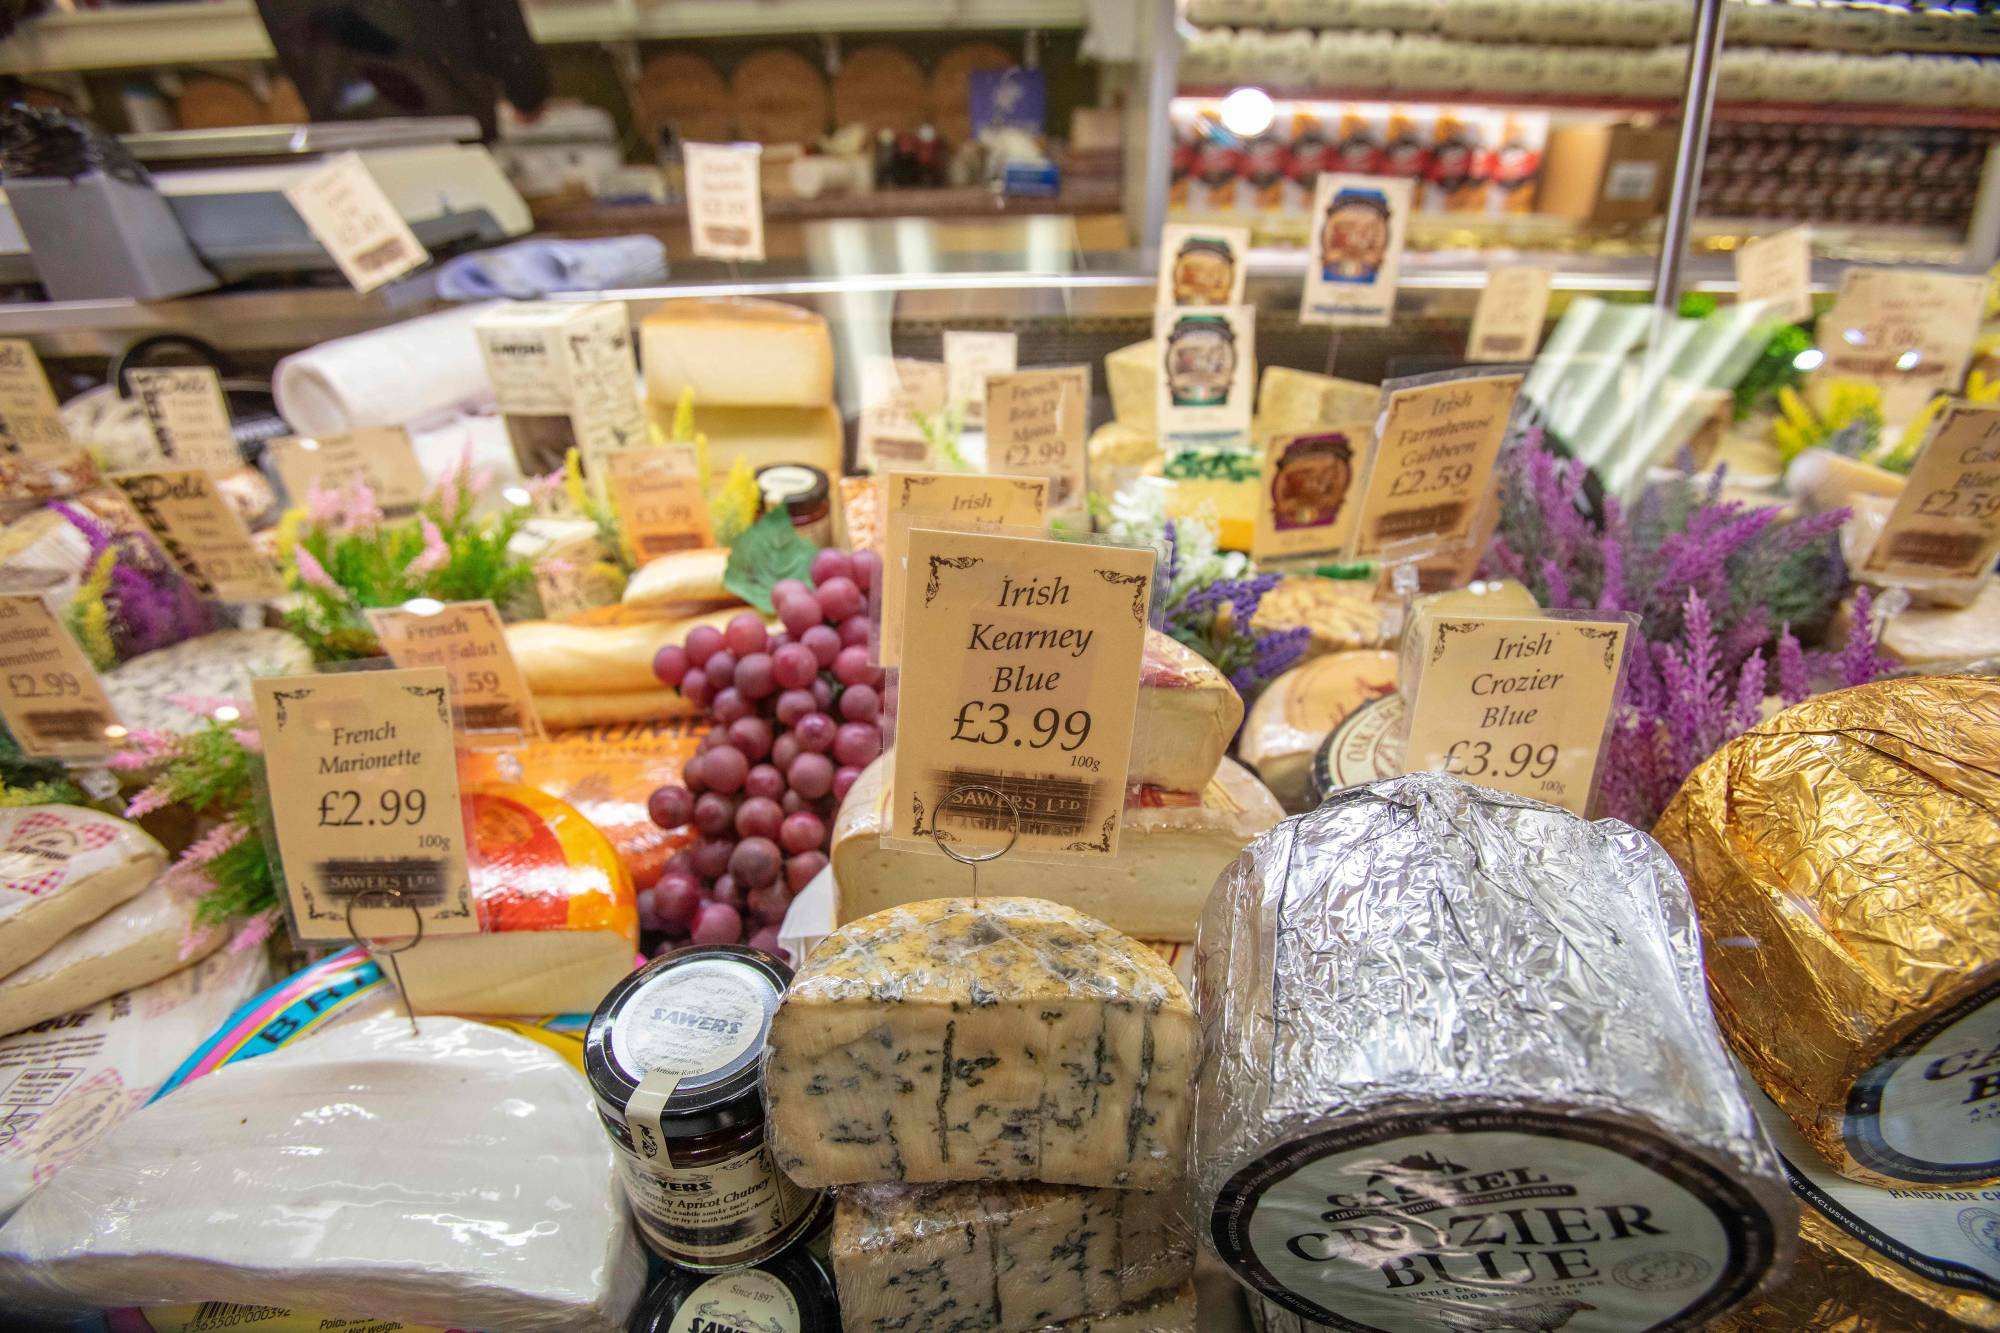 A range of Irish and French cheeses are seen on display in Sawers Deli in Belfast, Northern Ireland, on Jan. 15. Sawers Deli is struggling to source English cheese. They are now sourcing more French and Irish cheese, as it is easier to import since Brexit. | AFP-JIJI